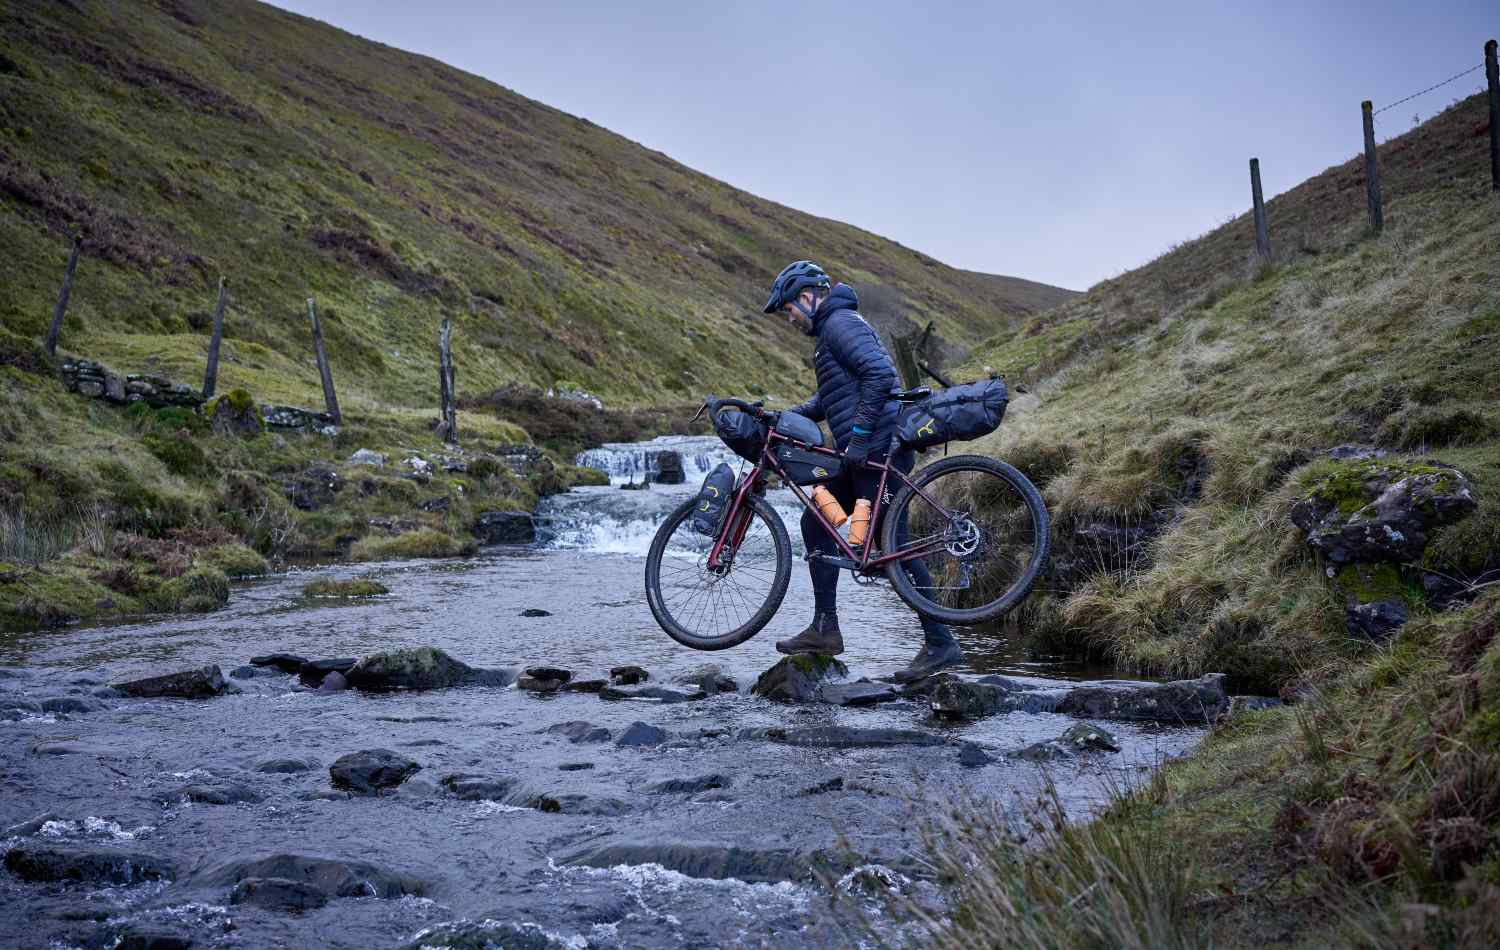 Marcus crosses a river, carrying his bike